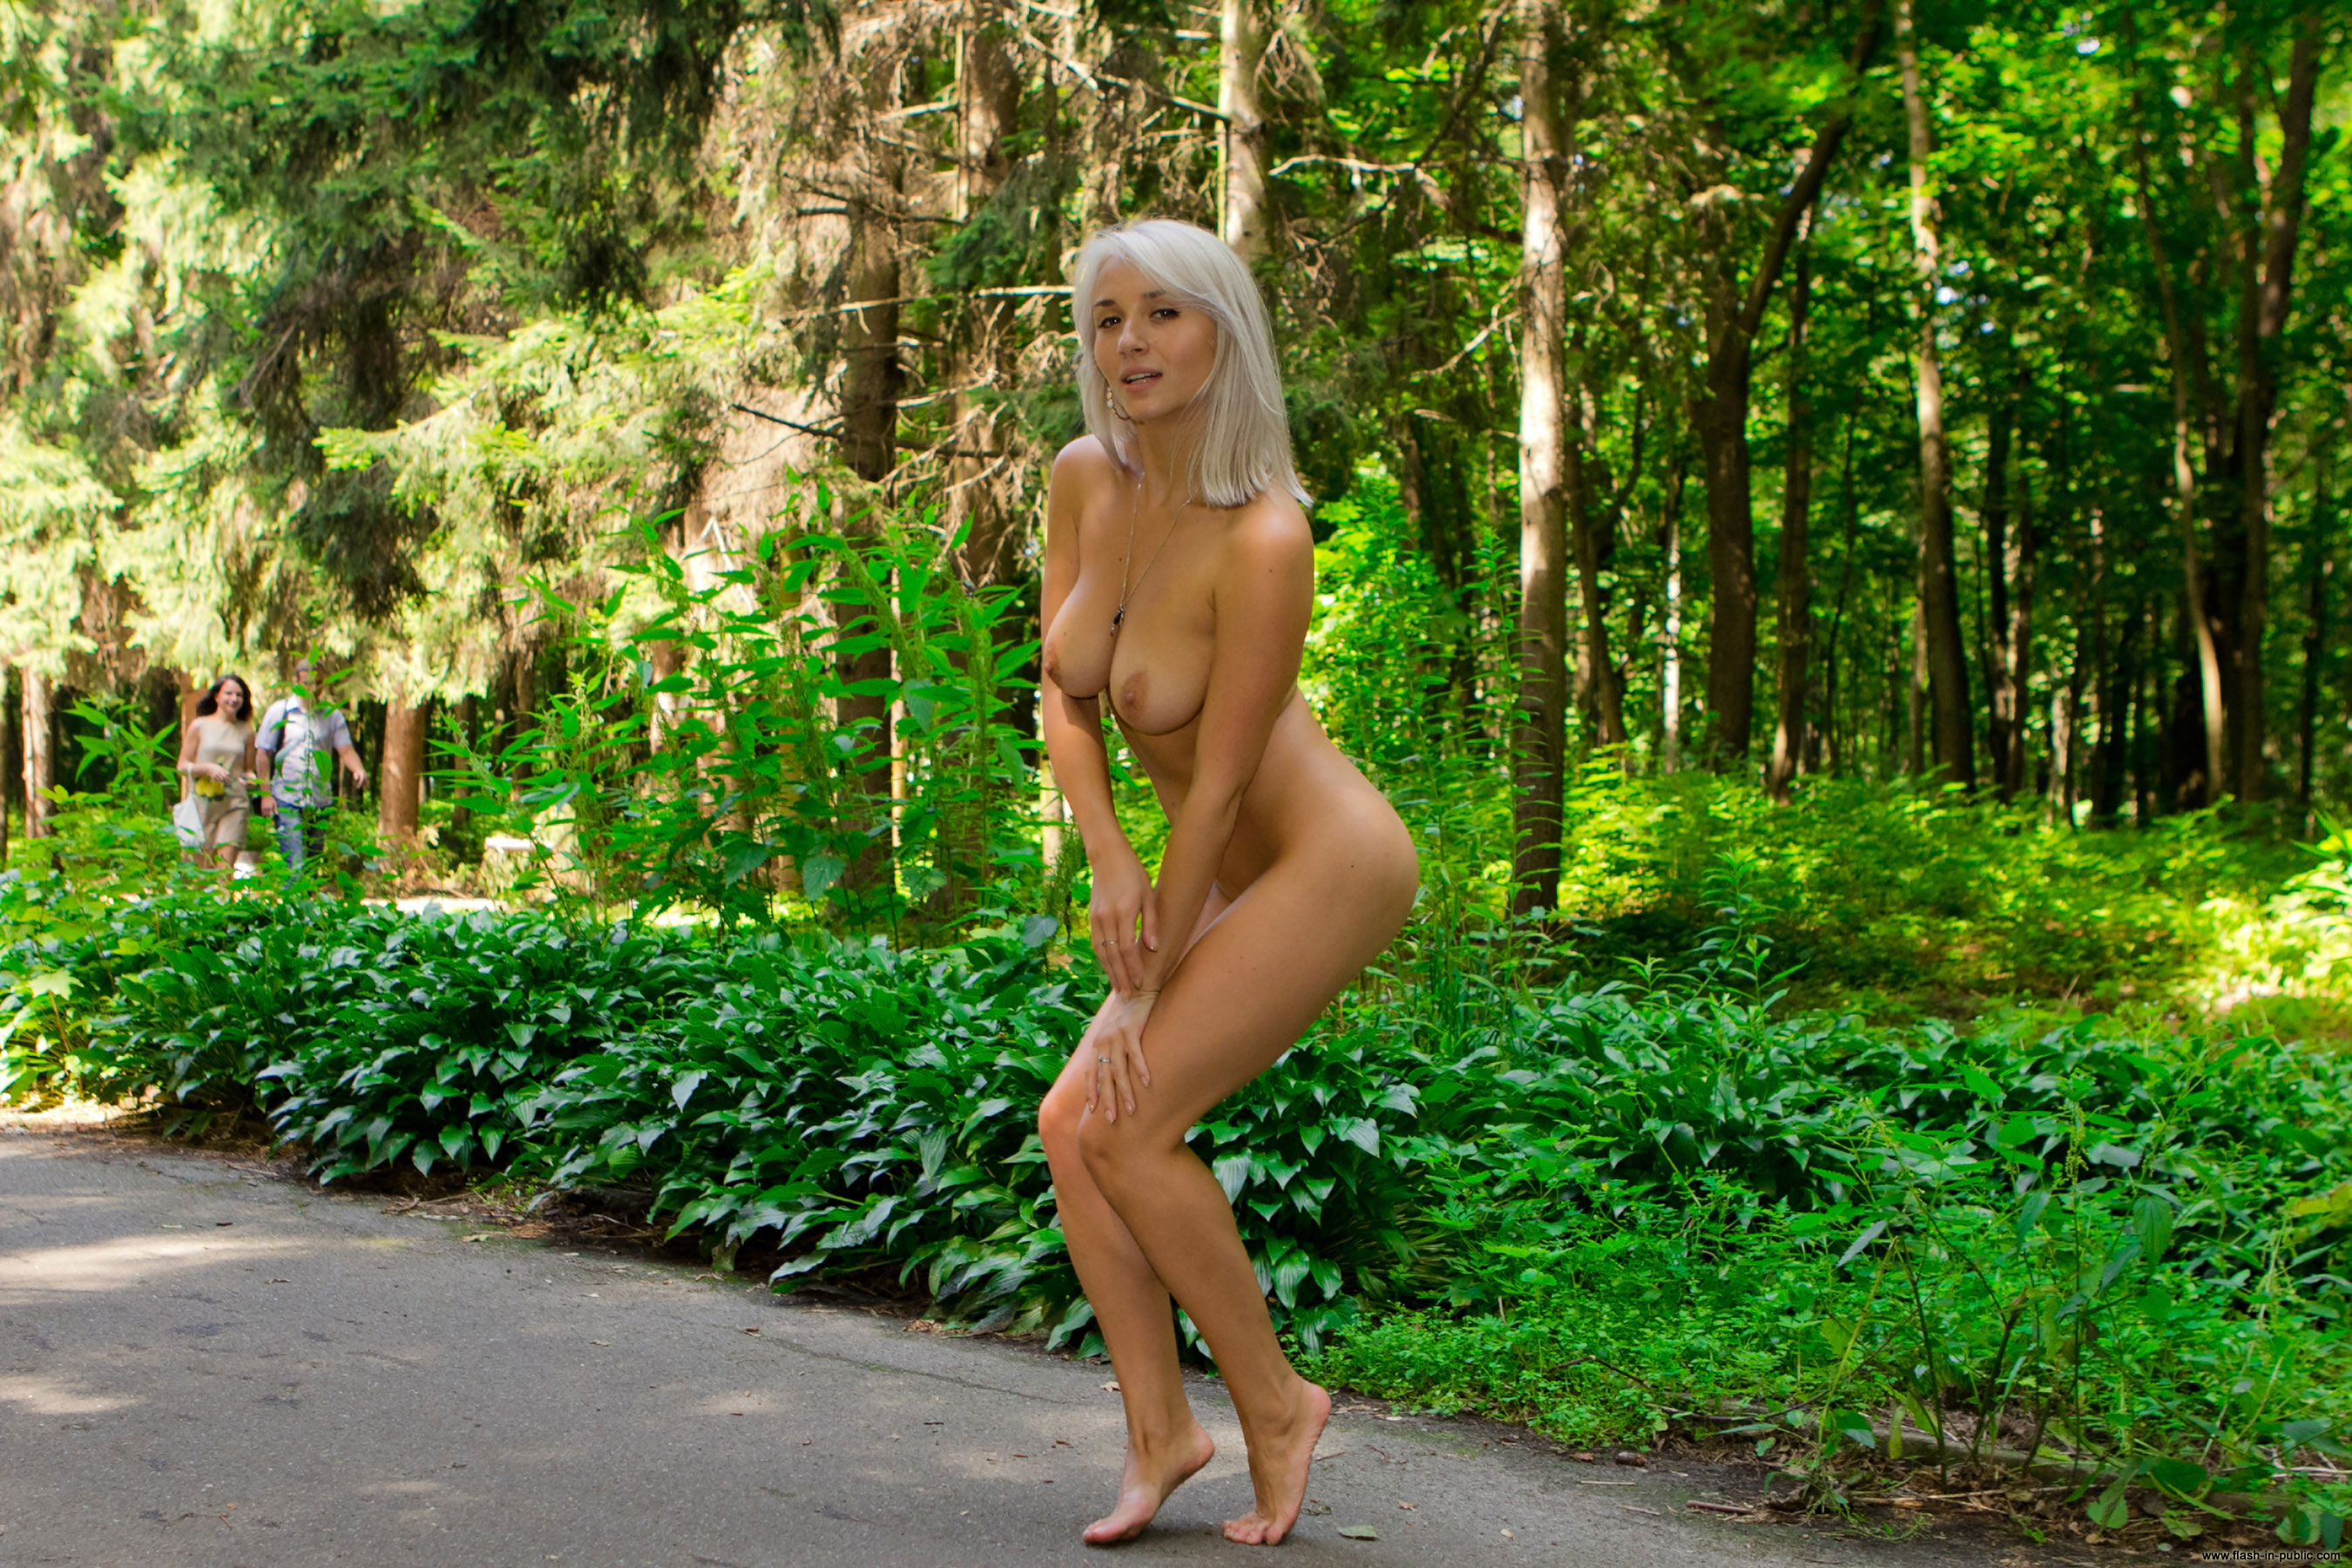 pictures-of-girls-naked-at-the-park